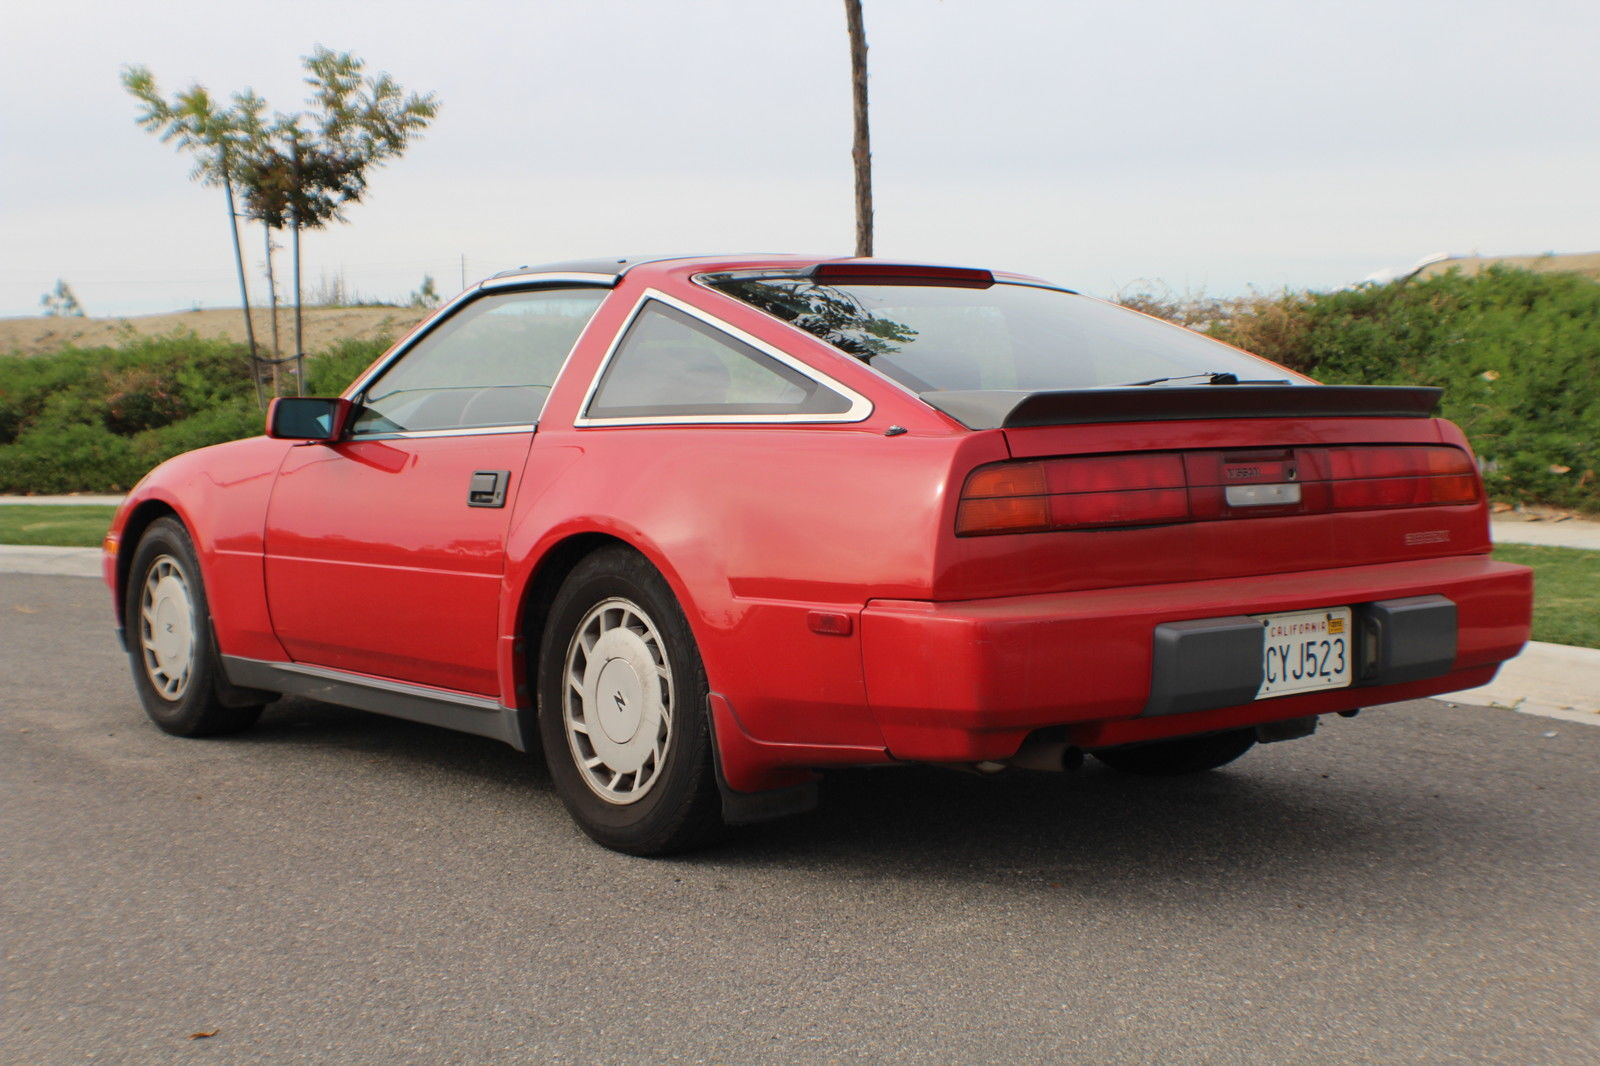 1989 nissan 300zx base coupe 2 door 3 0l classic nissan 300zx 1989 for sale. Black Bedroom Furniture Sets. Home Design Ideas